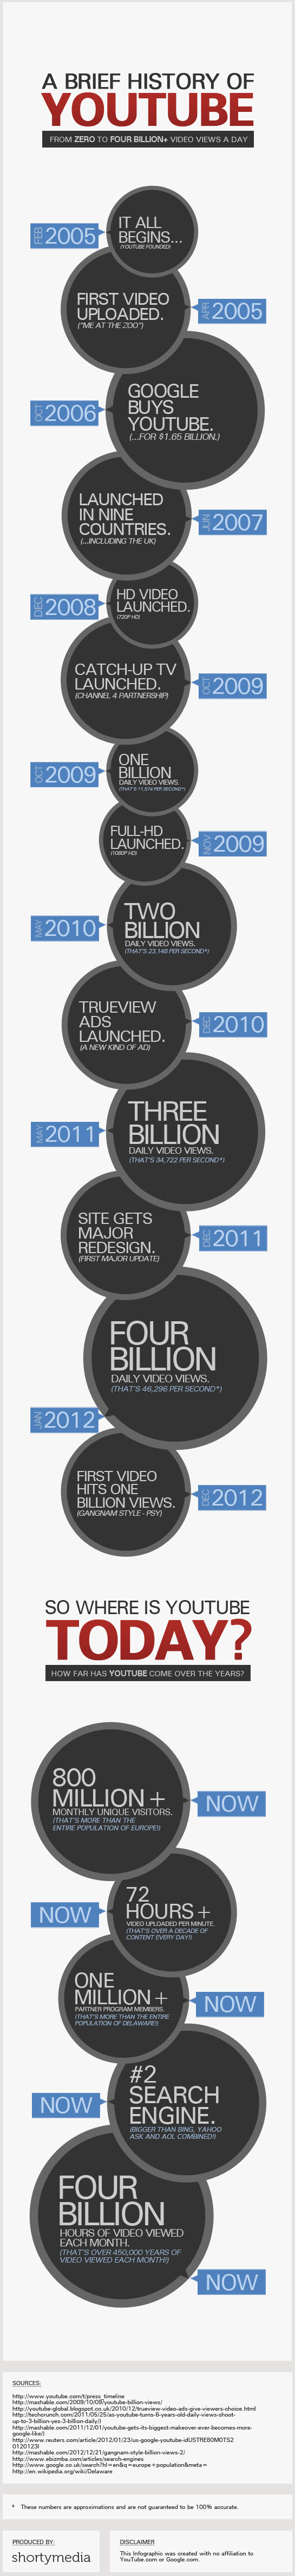 Infographic - The History of YouTube